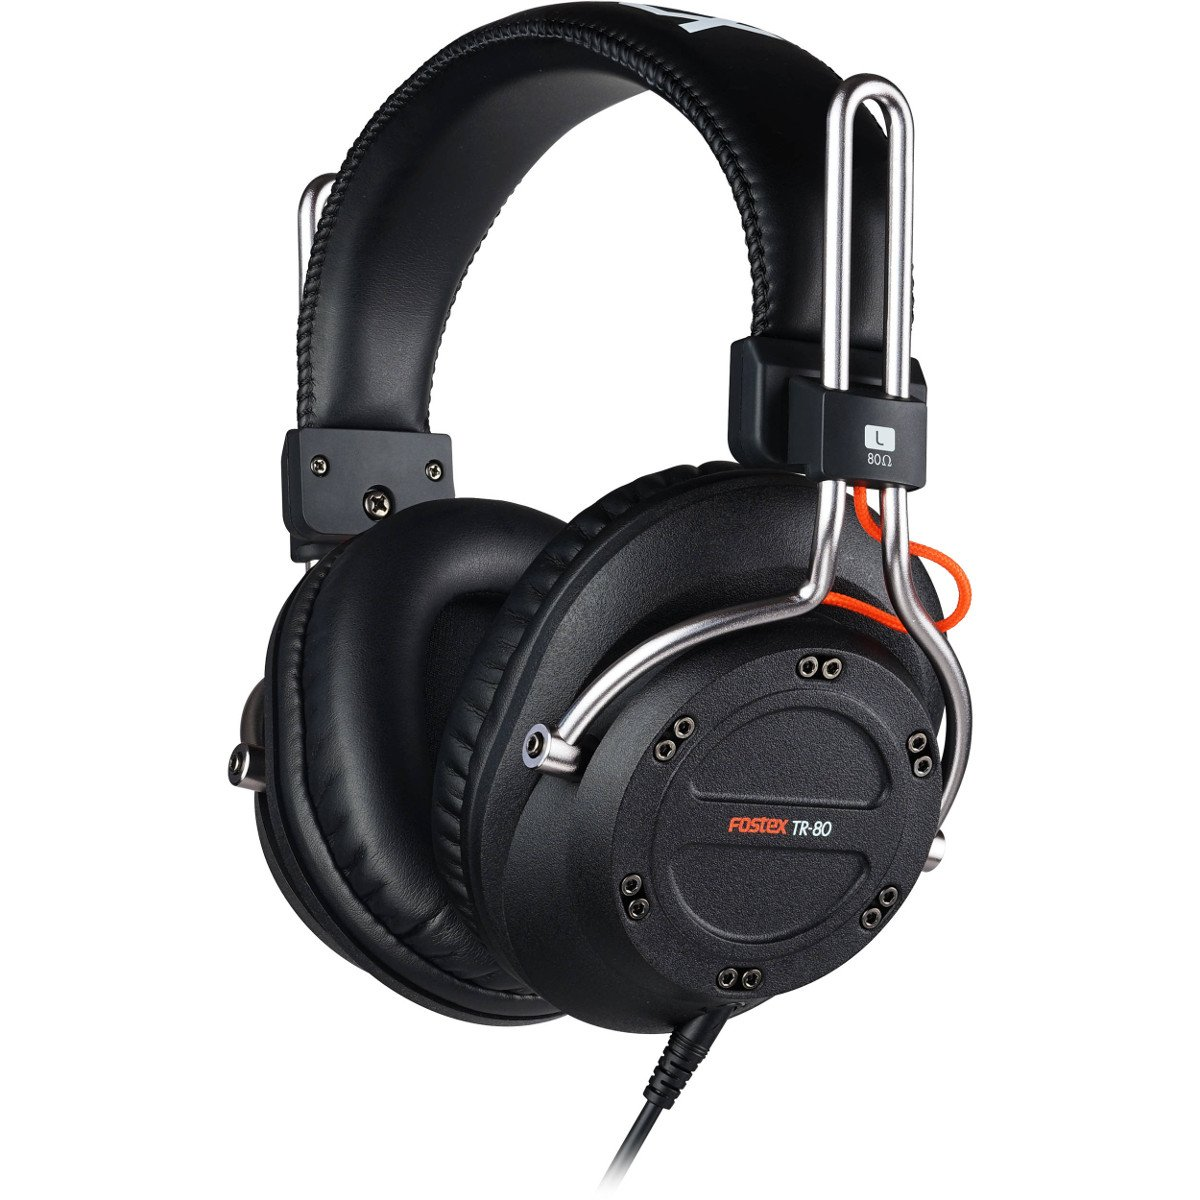 Closed Stereo Headphones, 80 Ohm